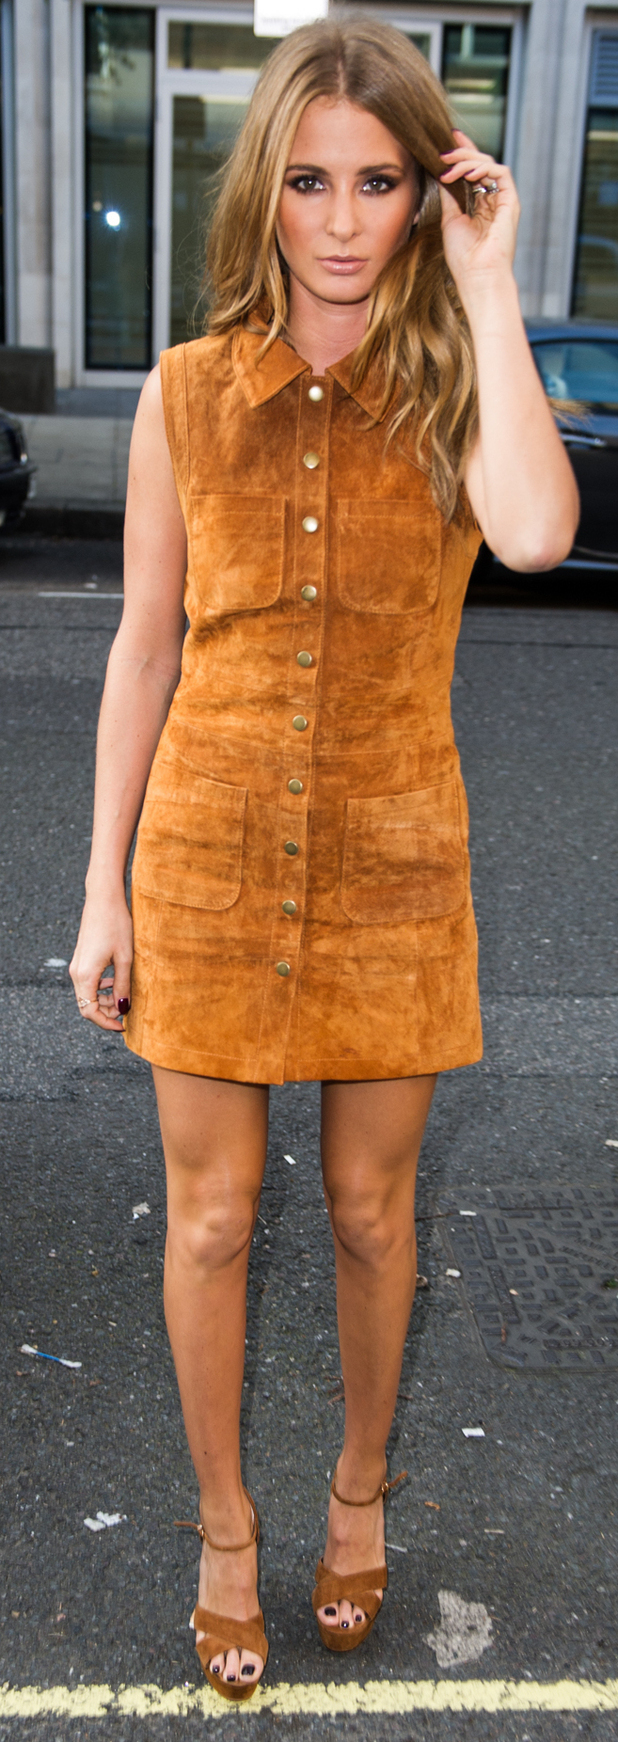 Millie Mackintosh launches Made her brand new book in London, 8th September 2015